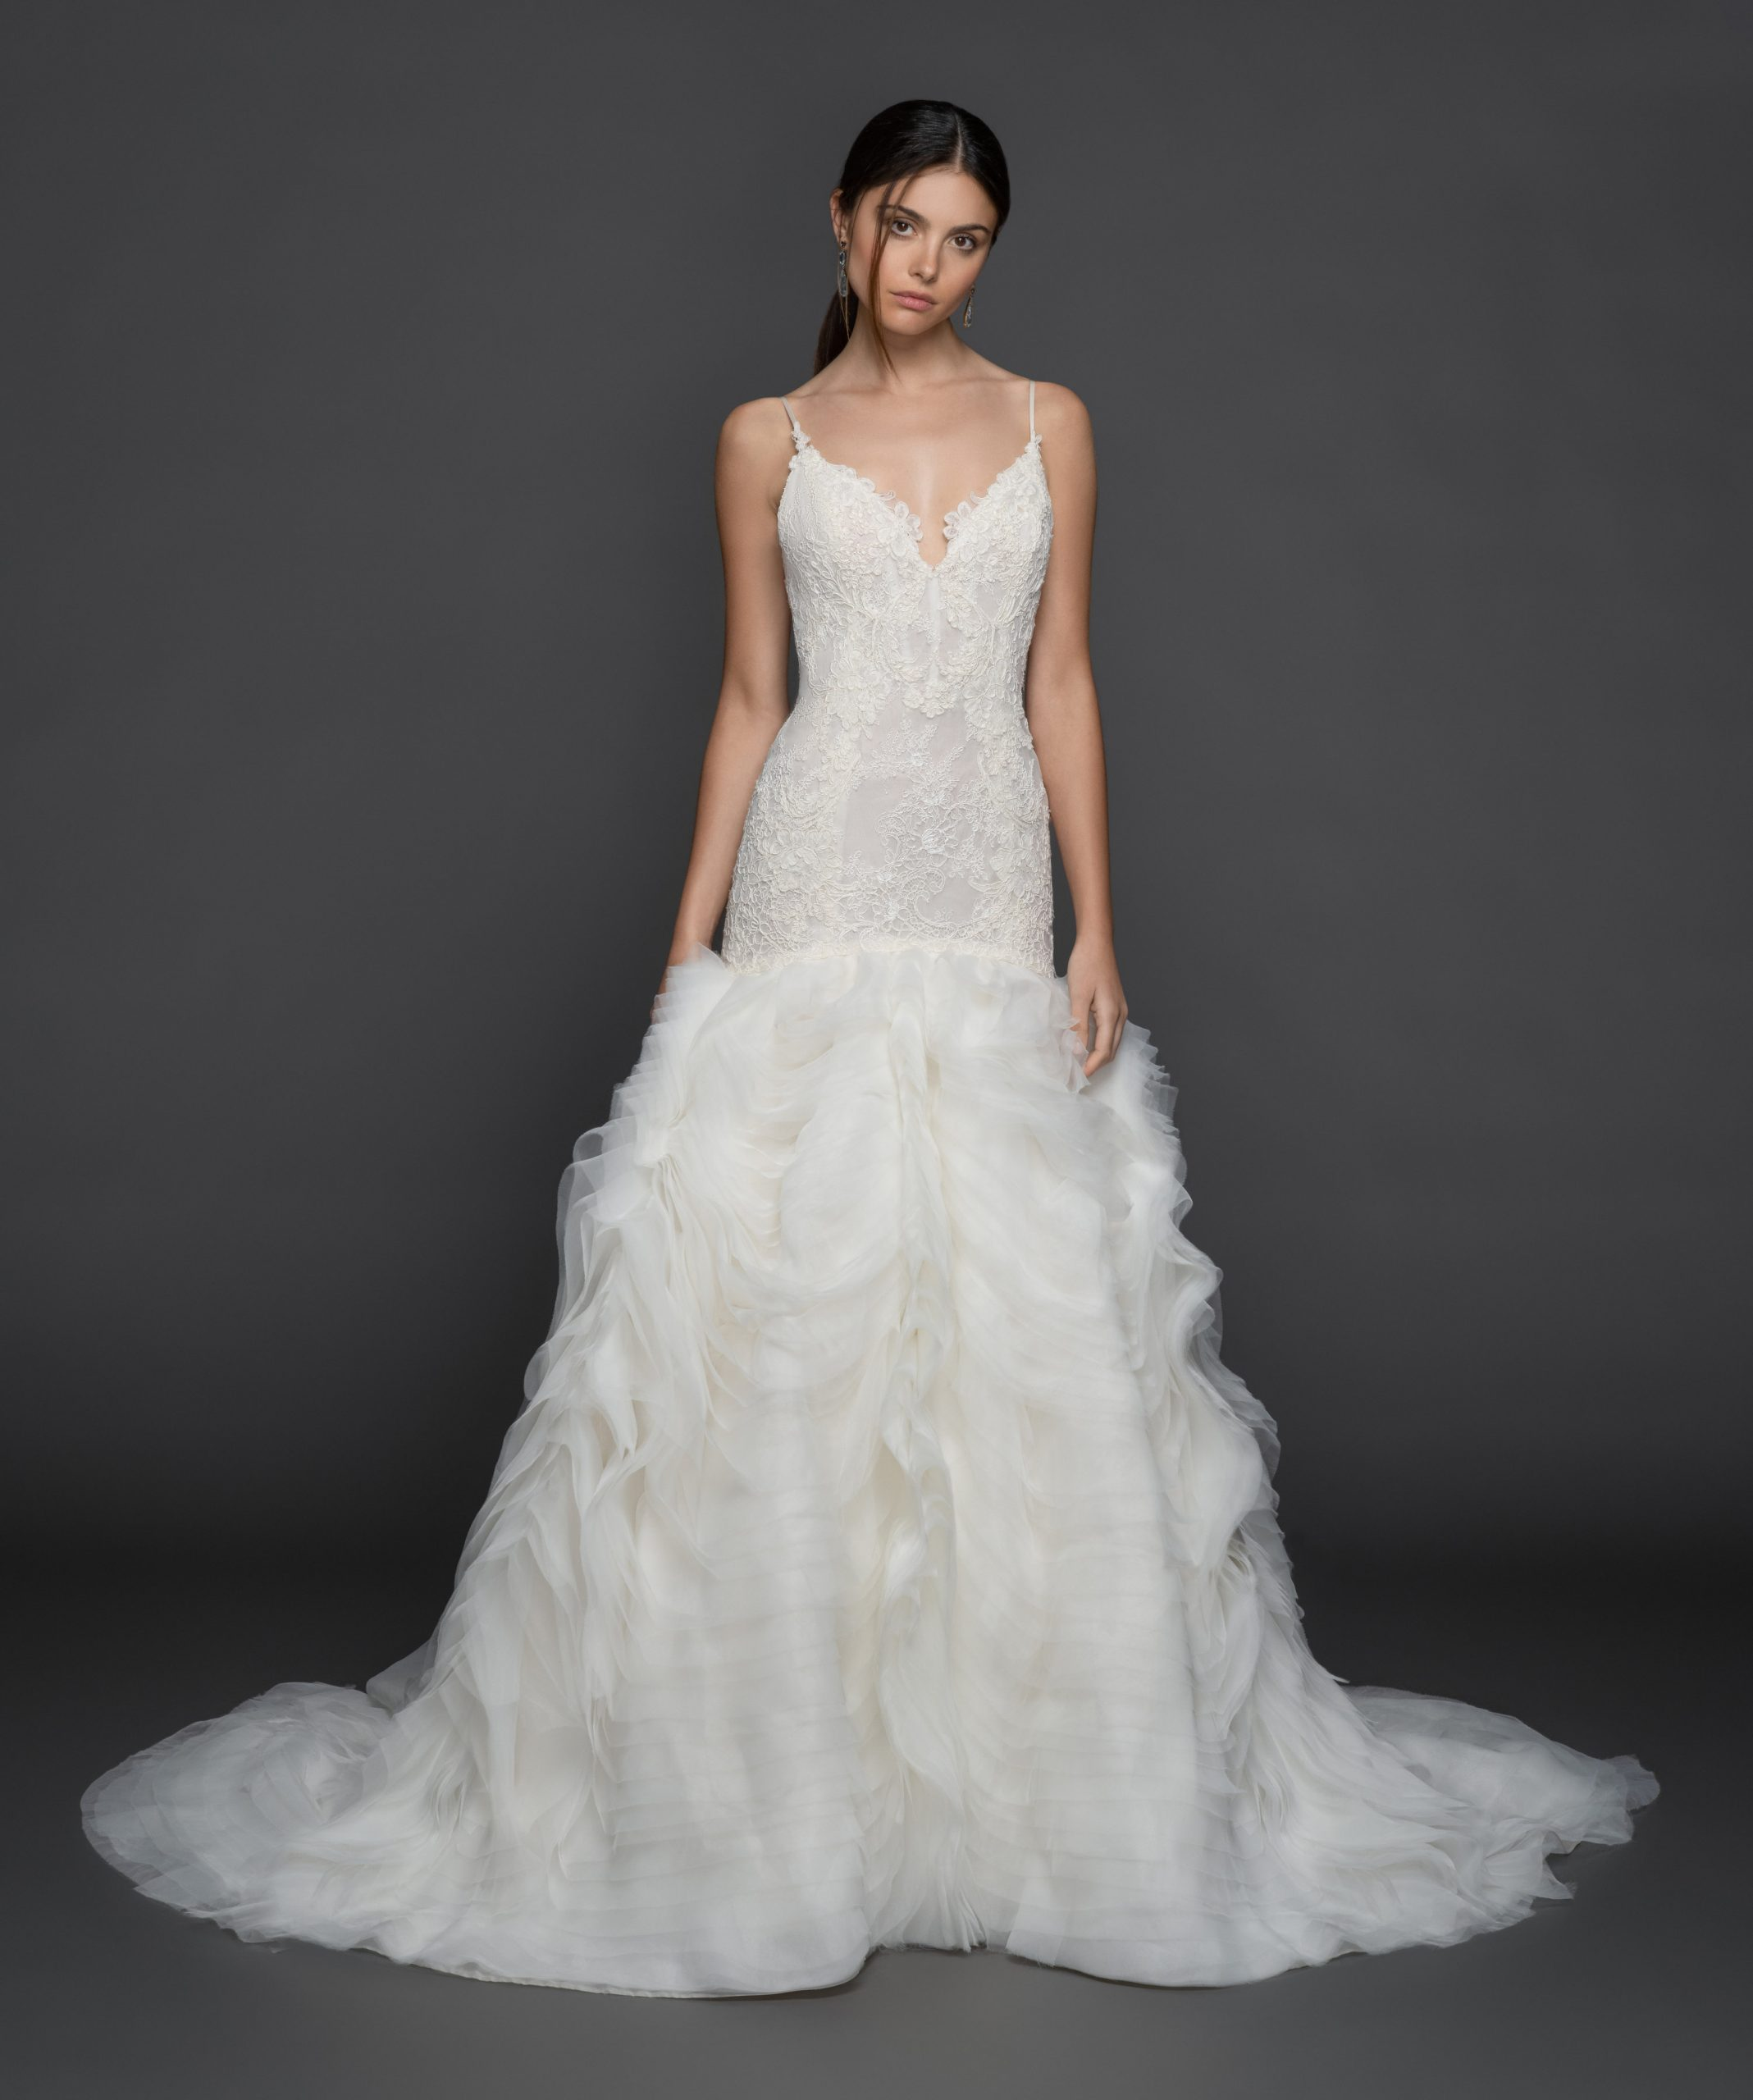 Spaghetti Strap V-Neck Fit And Flare Wedding Dress With Layered Organza Skirt by Lazaro - Image 1